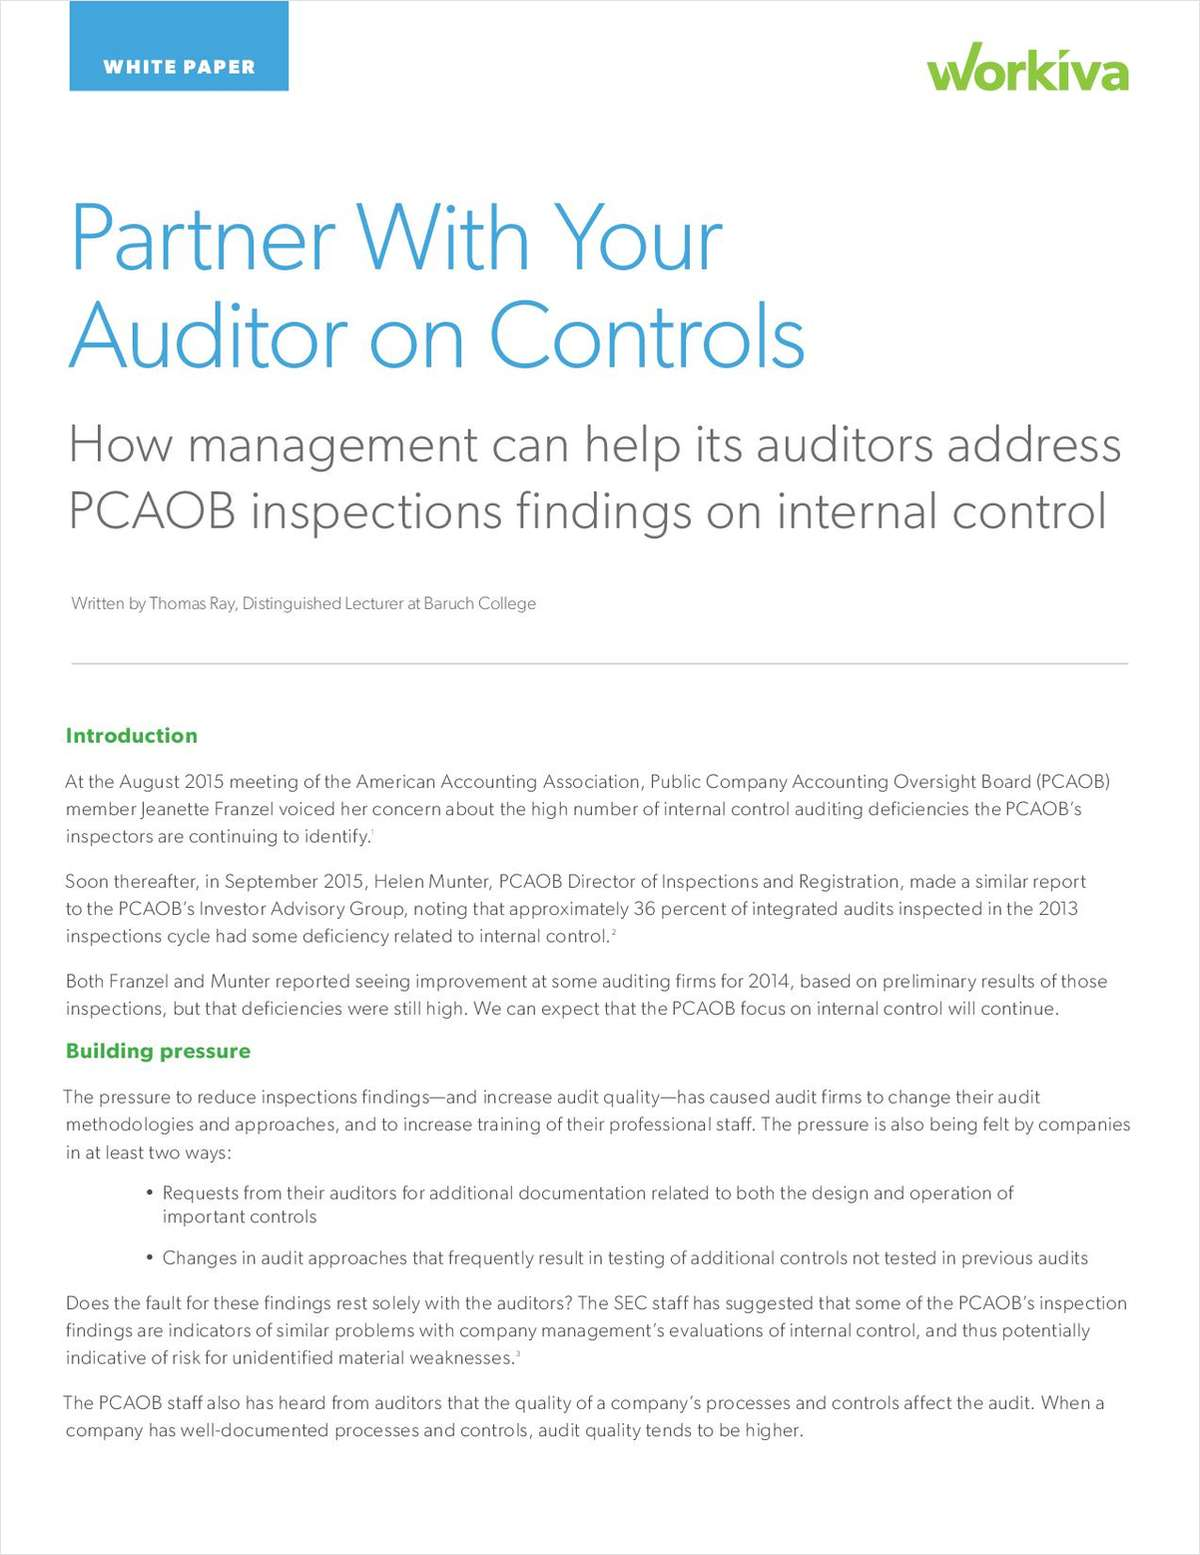 How Management Can Help their Auditors Address PCAOB Inspections Findings on Internal Control